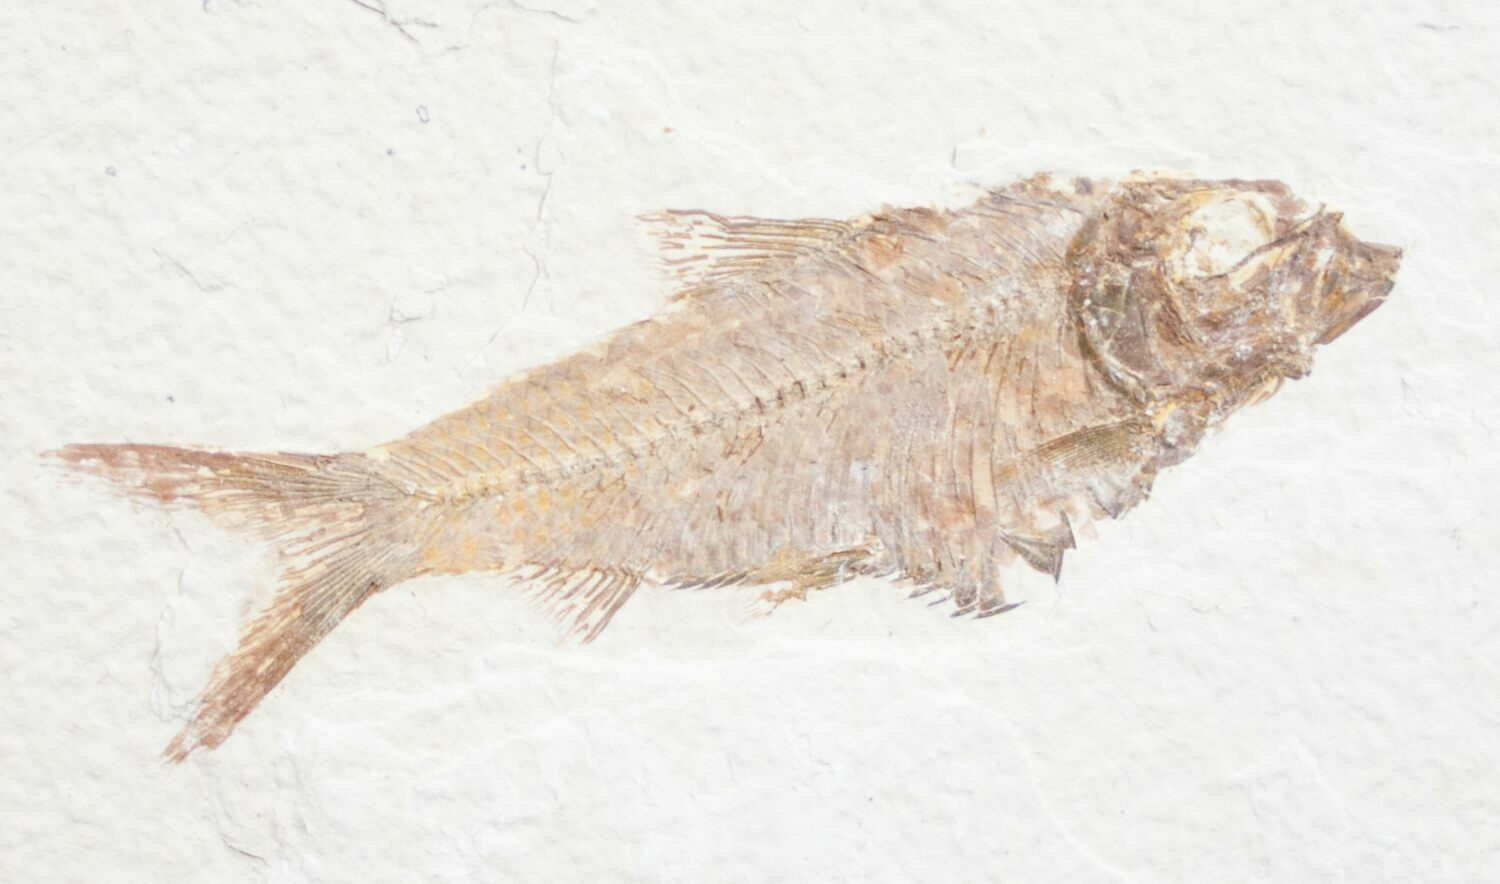 3 4 knightia fossil fish wyoming for sale 10027 for Fish fossils for sale